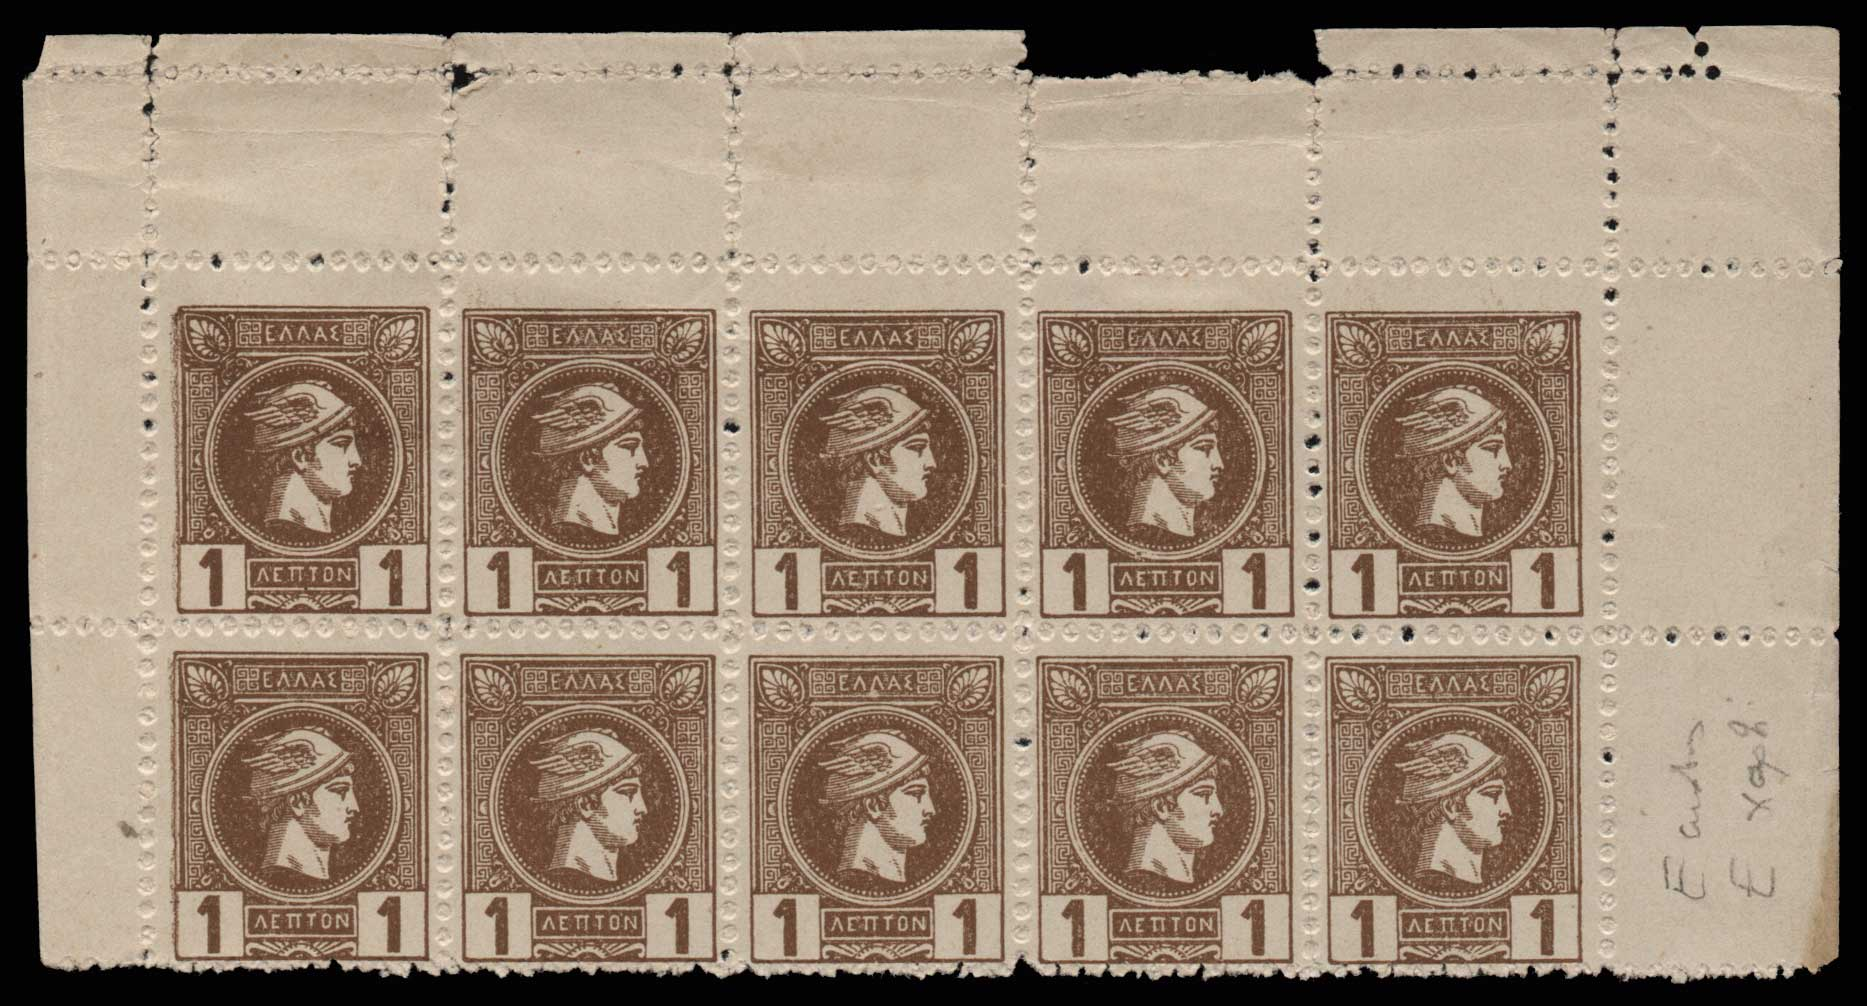 Lot 496 - GREECE-  SMALL HERMES HEAD ATHENSPRINTING - 3rd PERIOD -  Athens Auctions Public Auction 63 General Stamp Sale